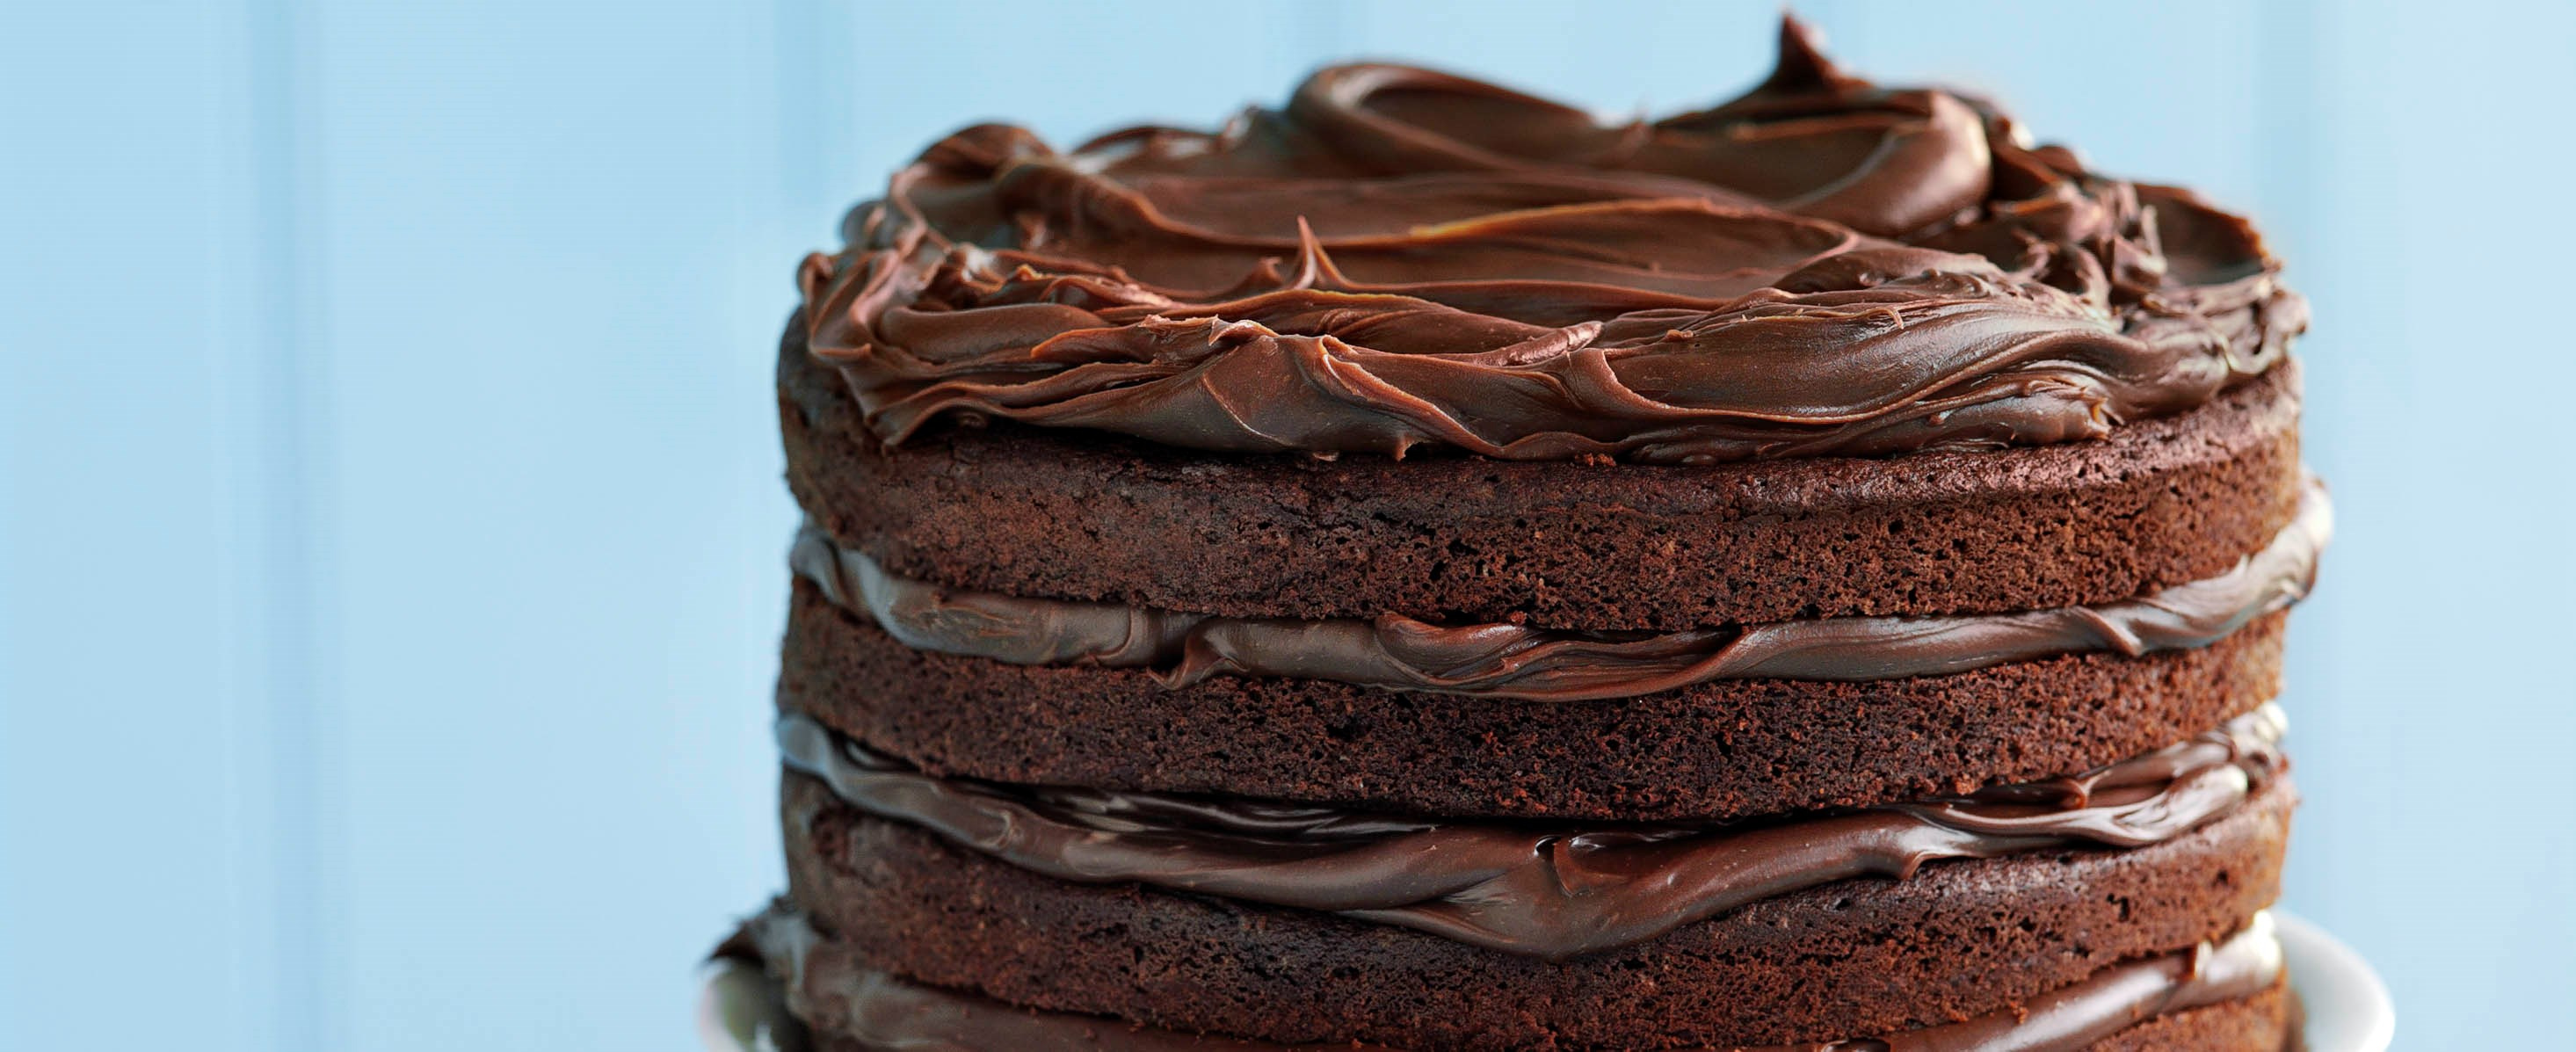 Best ever chocolate cake recipes - olive